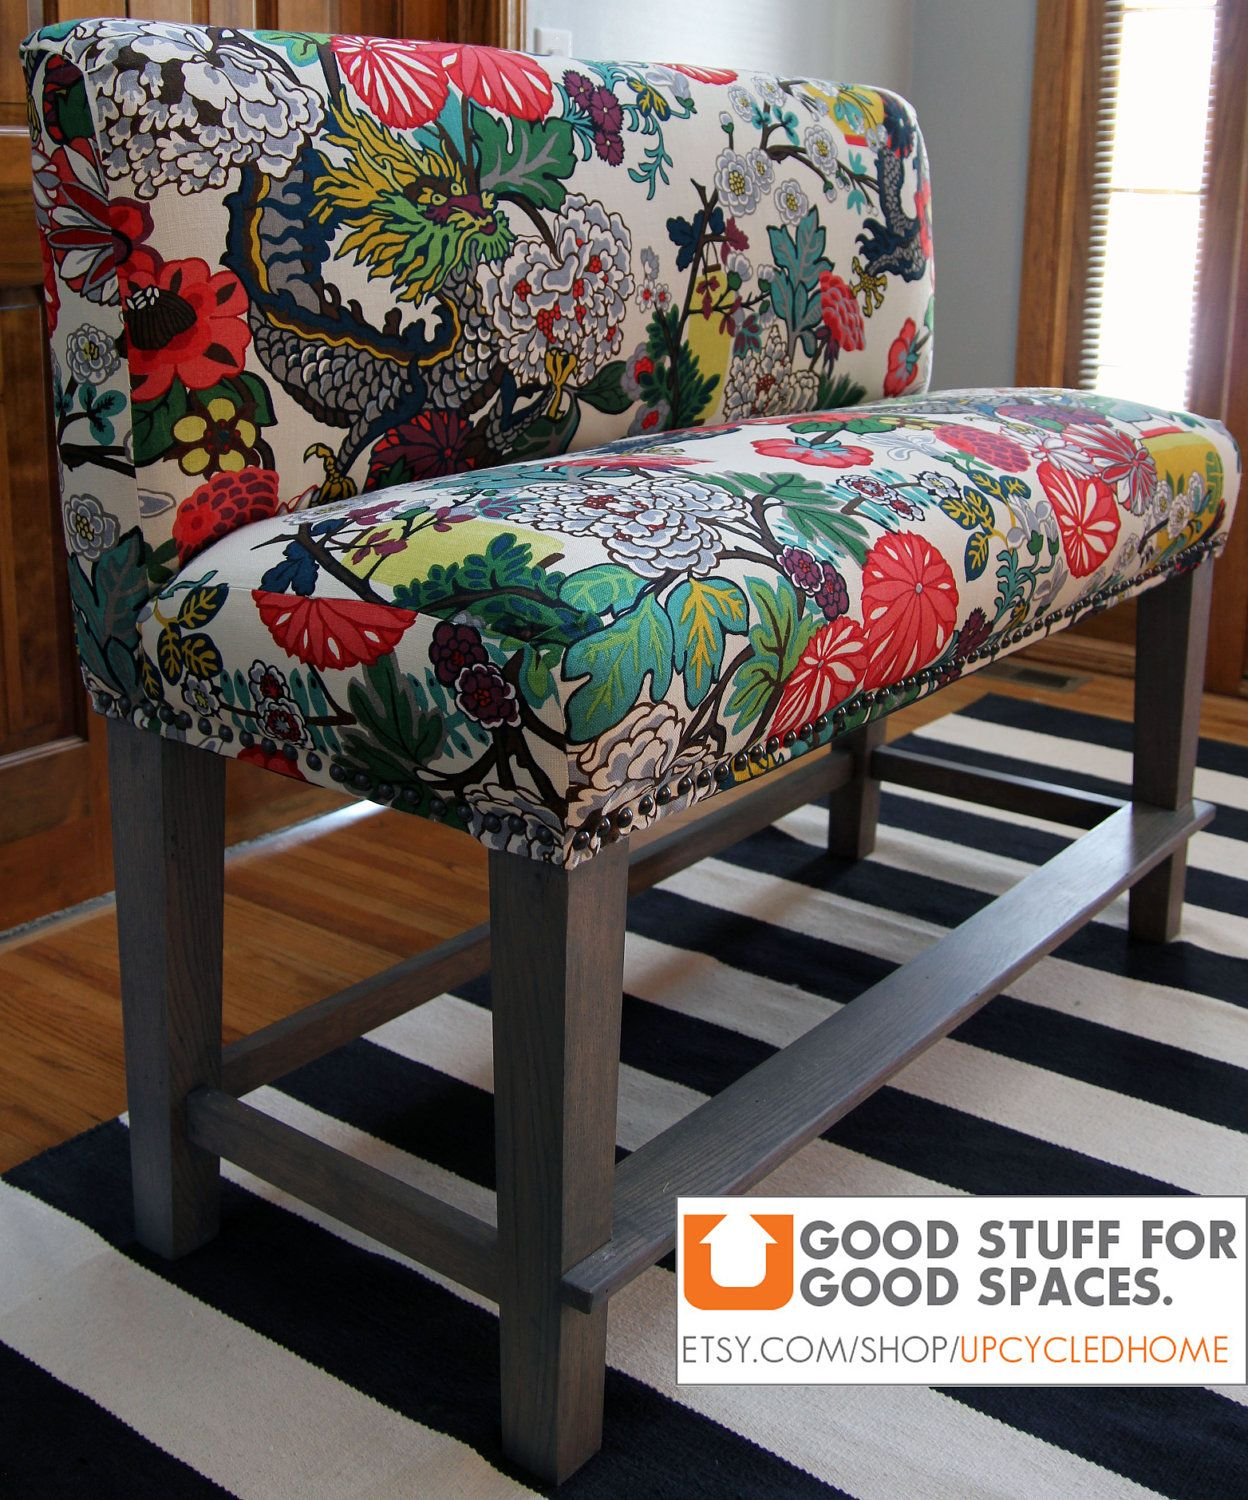 upholstered counter height chair stool costco custom bench in chiang mai dragon my daughter says i should get it um okay